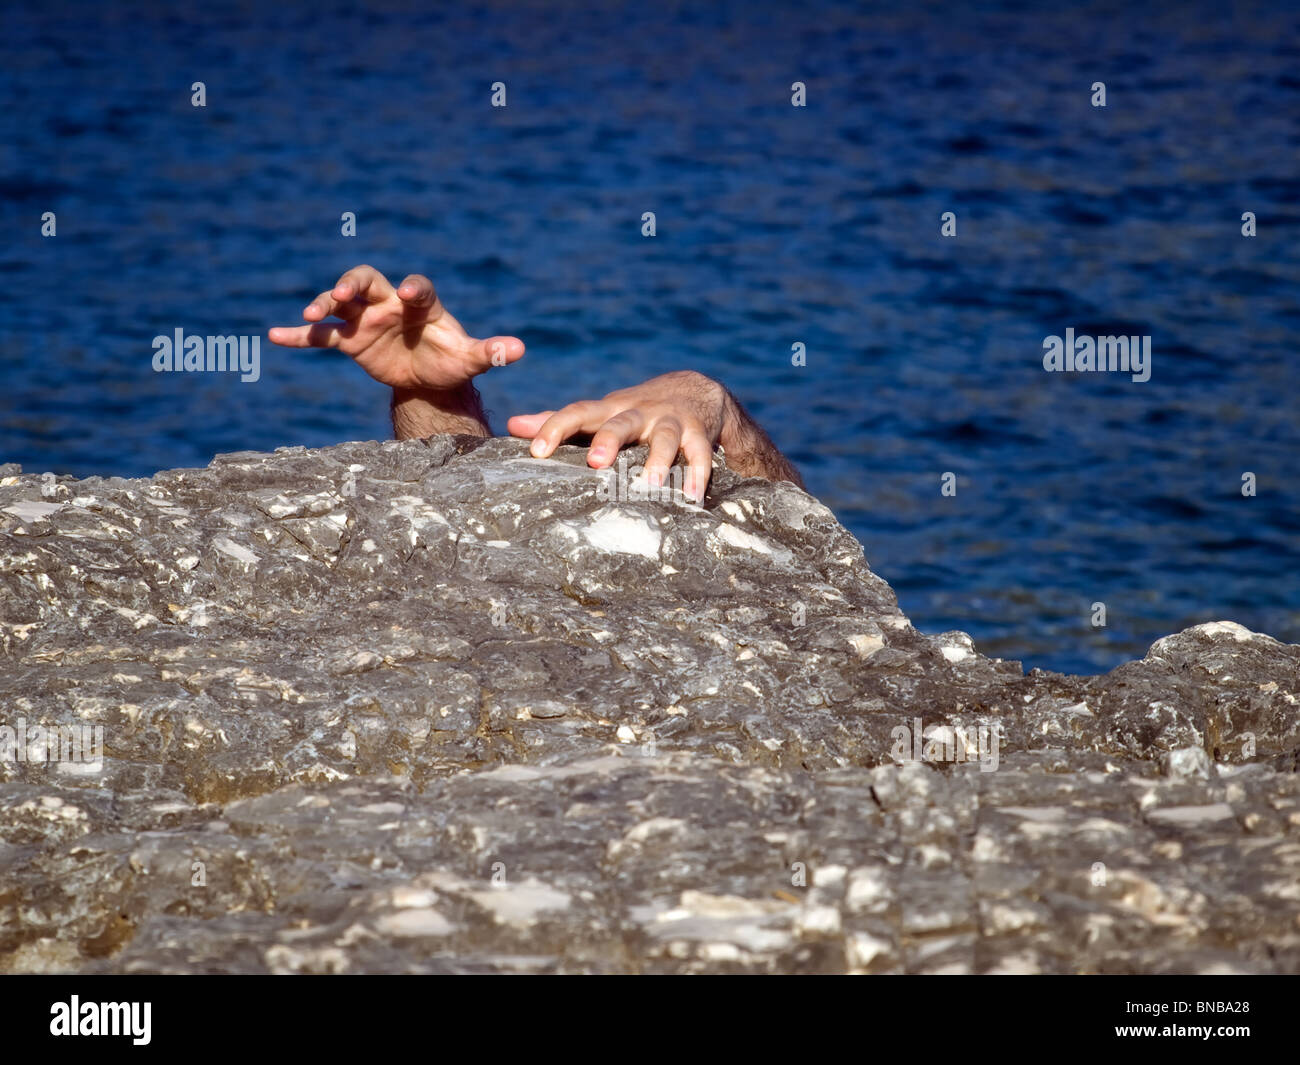 Castaway finds salvation on the rocky shore of an unknown island. Stock Photo